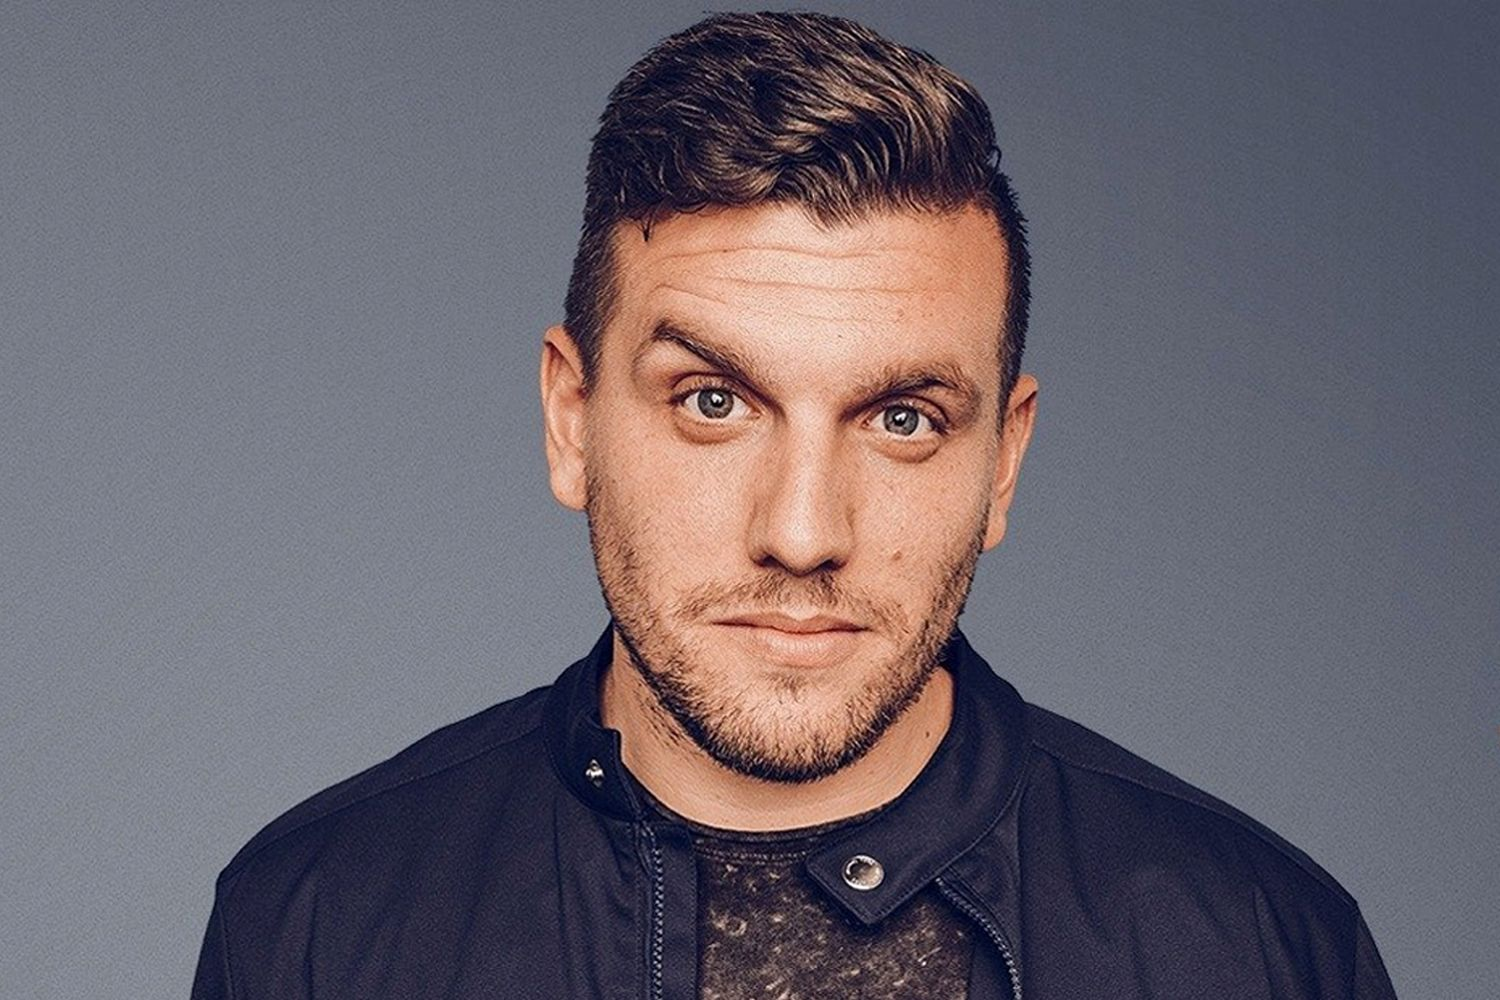 Chris Distefano - 7:30pm: Main Image